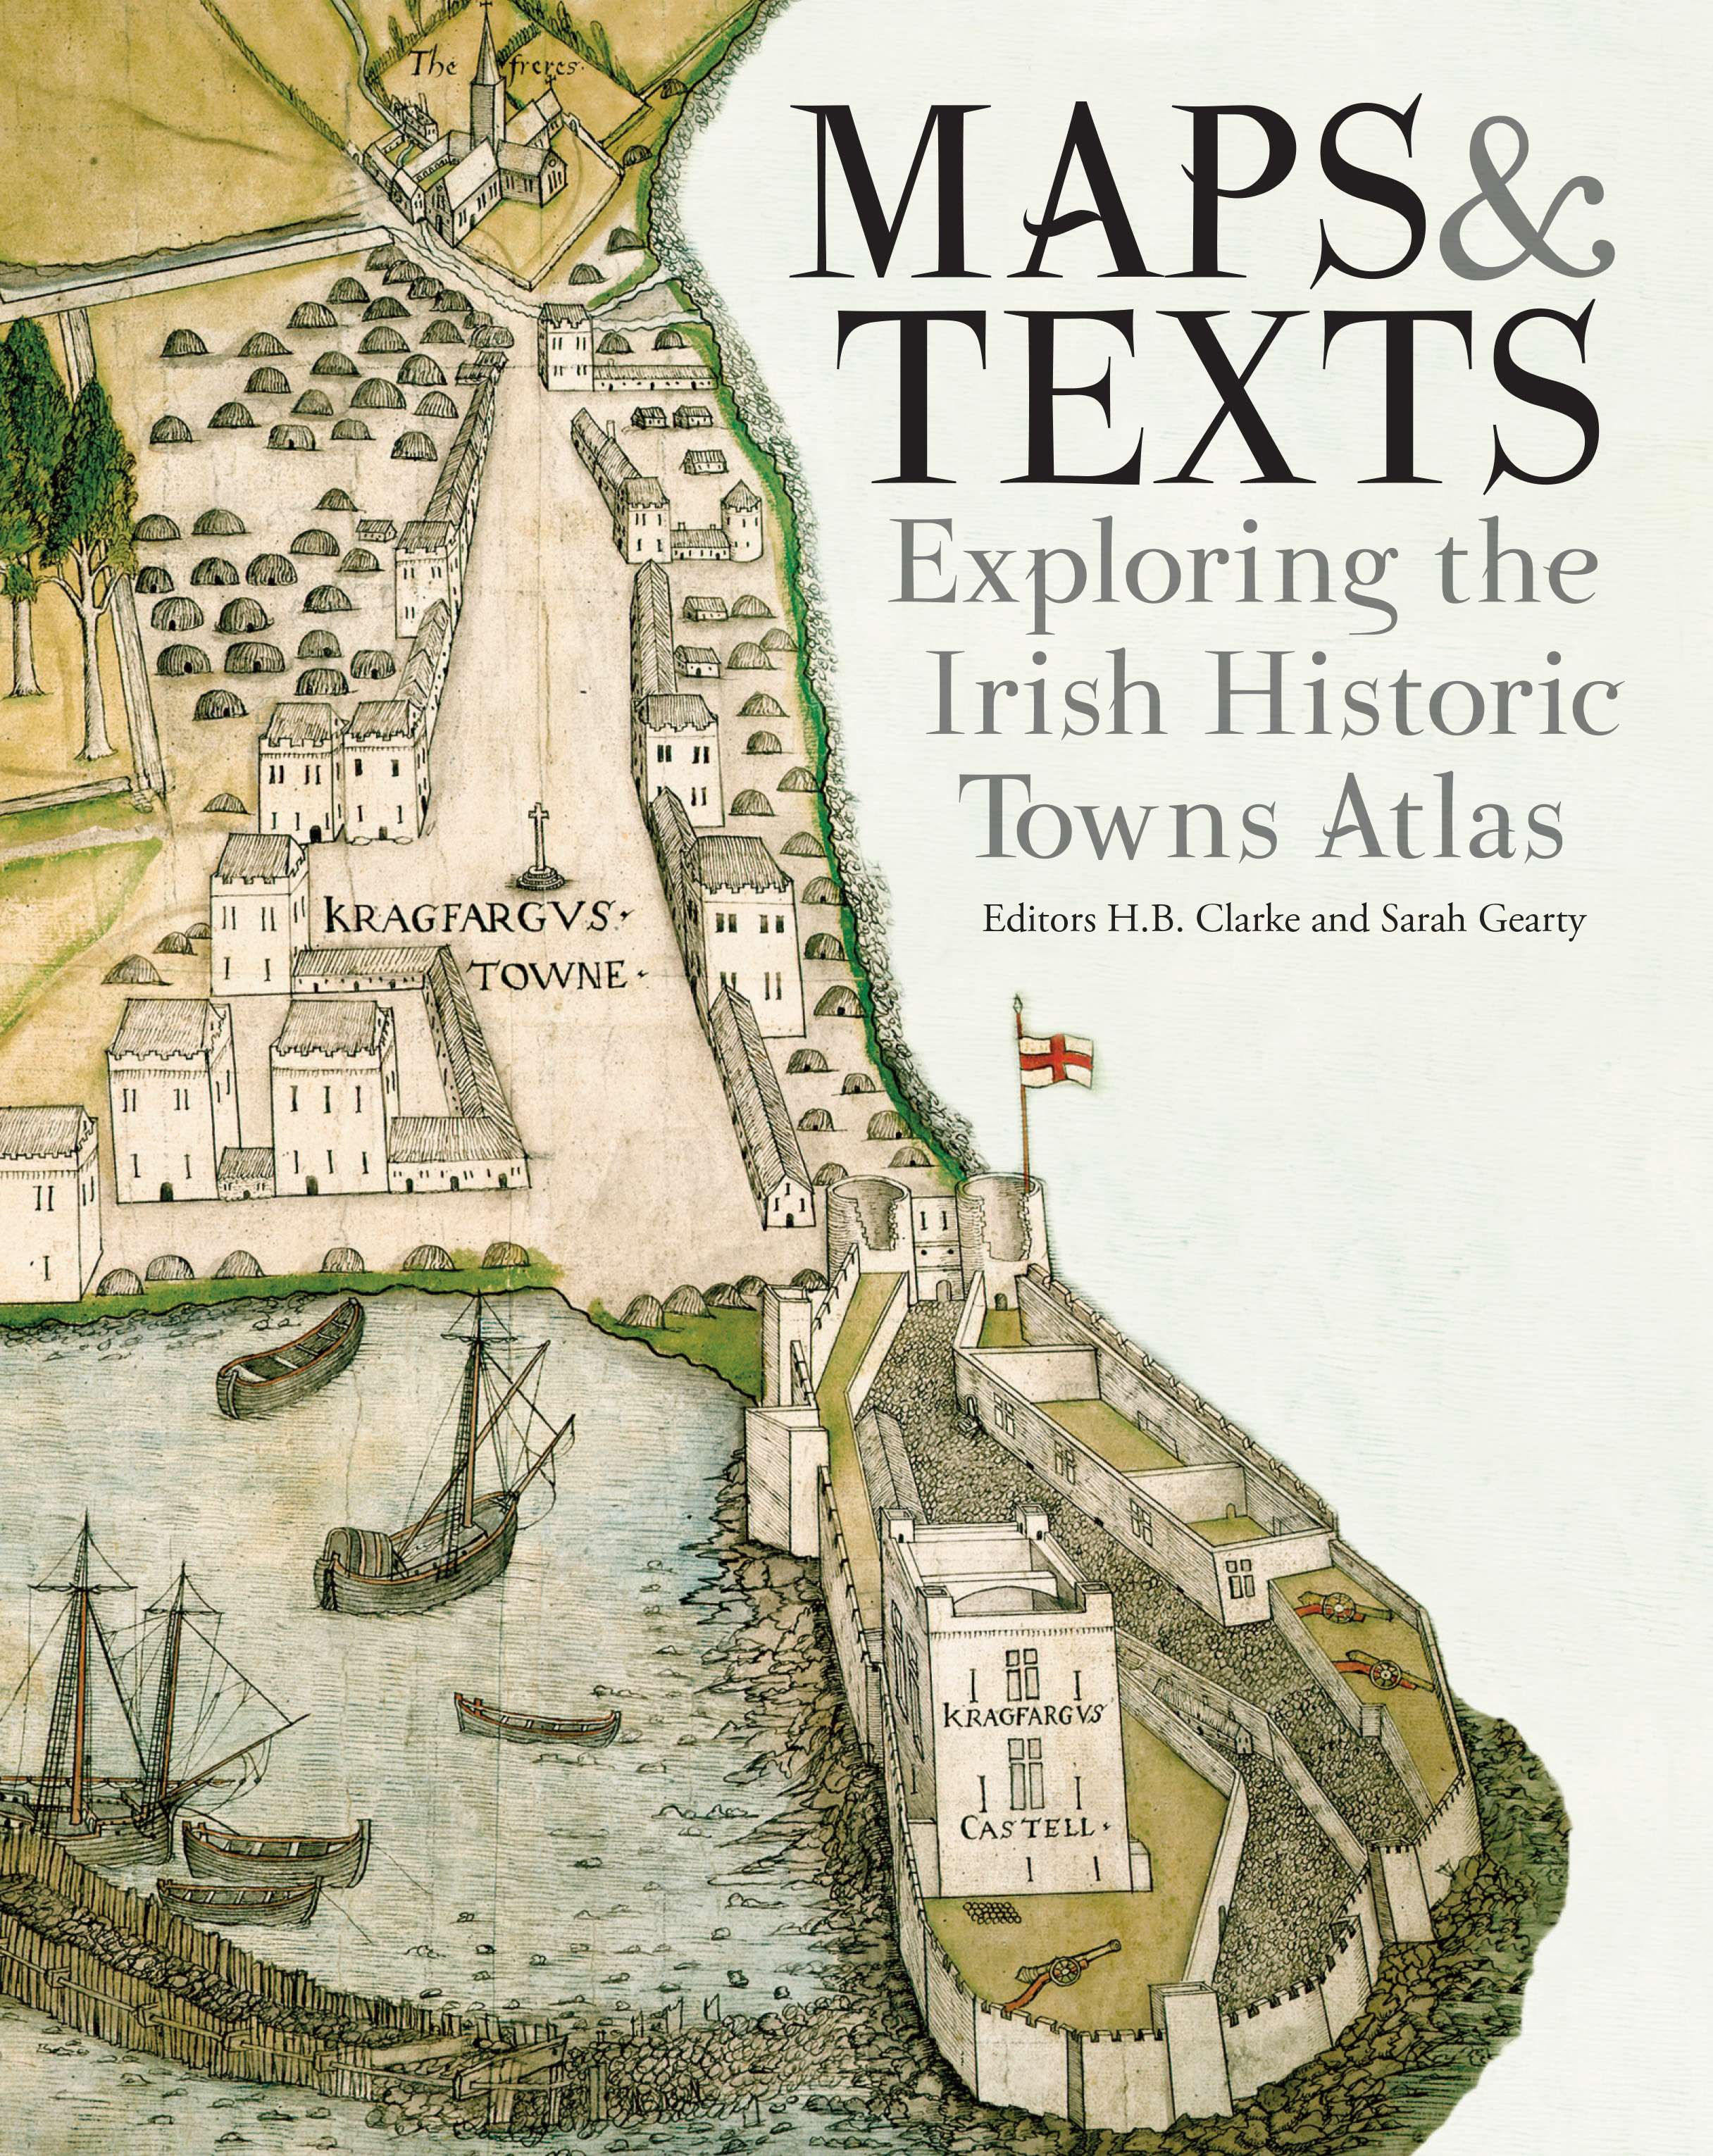 Map Of Ireland With Towns And Cities.Maps Texts Exploring The Irish Historic Towns Atlas Royal Irish